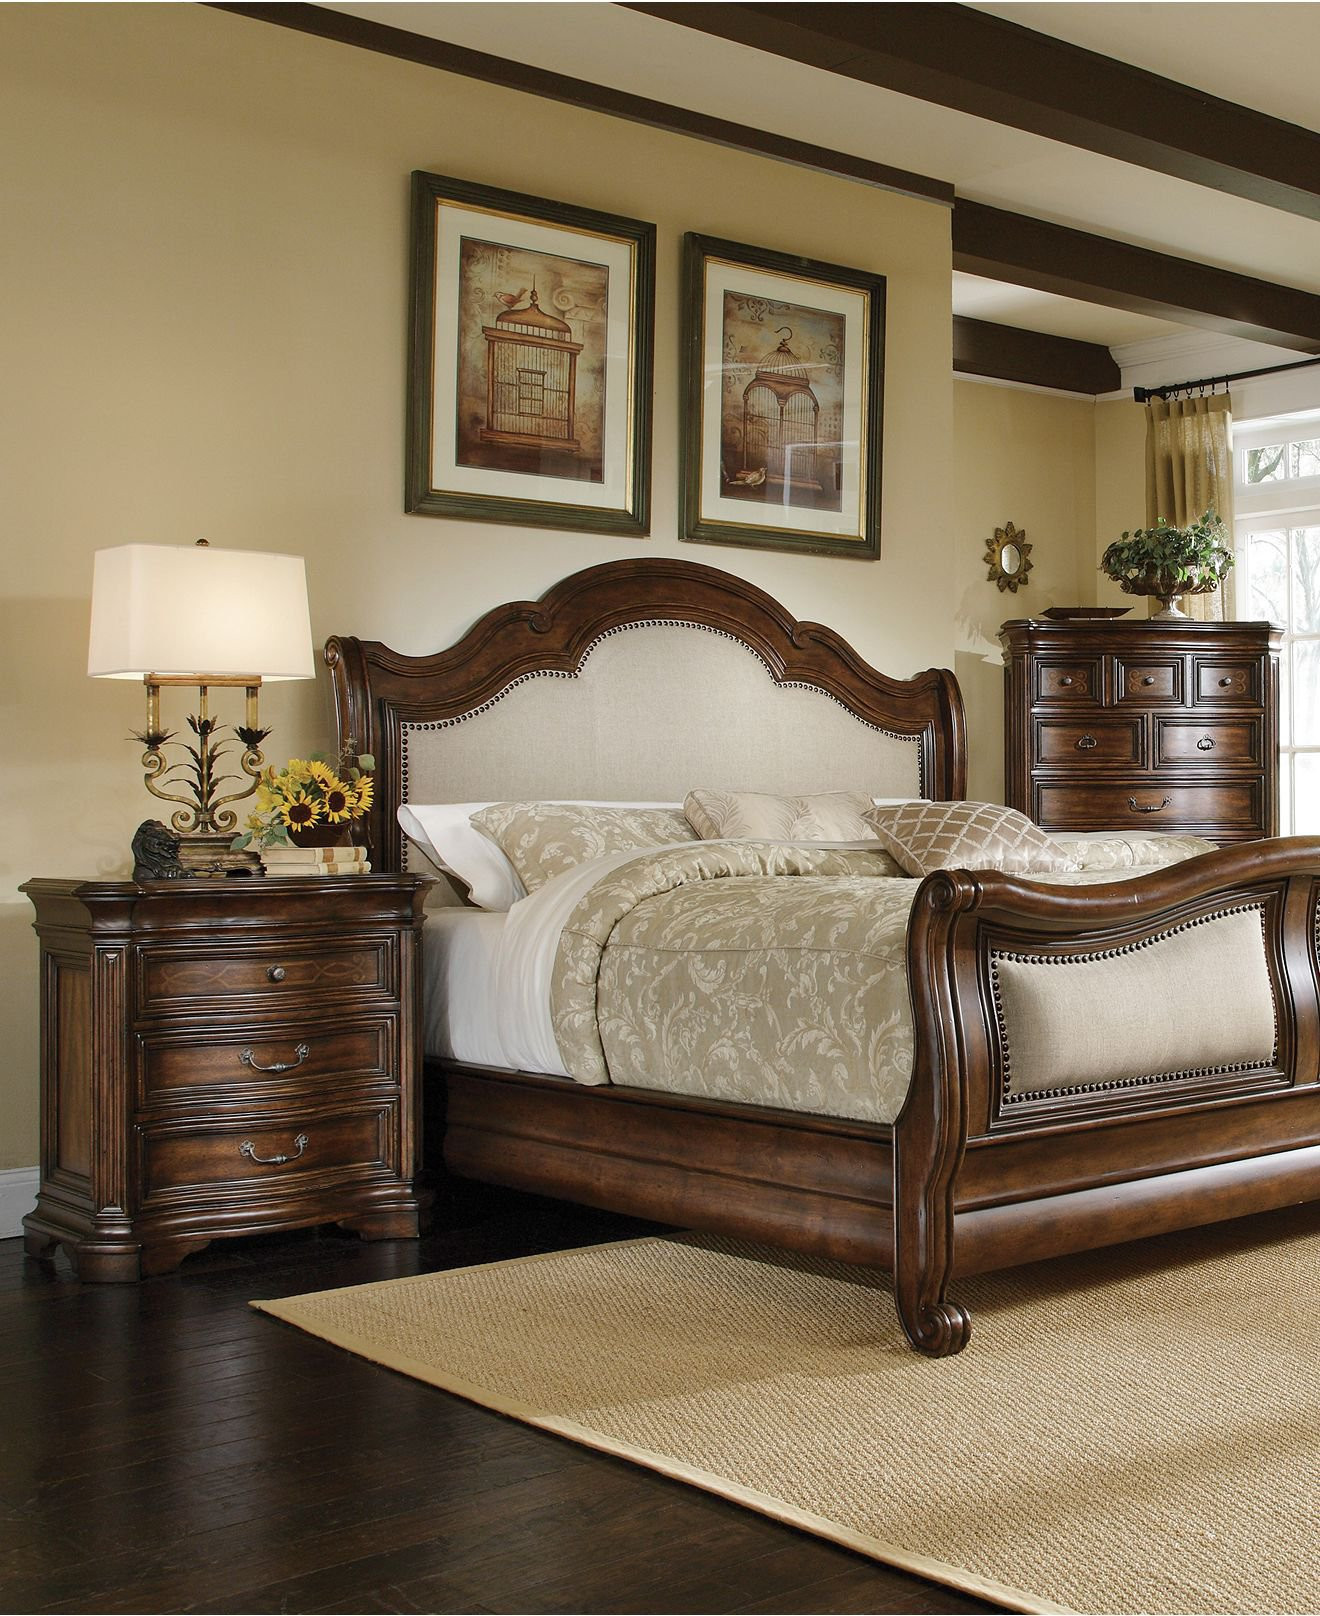 Best ideas about Macys Bedroom Sets . Save or Pin Salamanca Bedroom Furniture Sets & Pieces from Macy s Now.